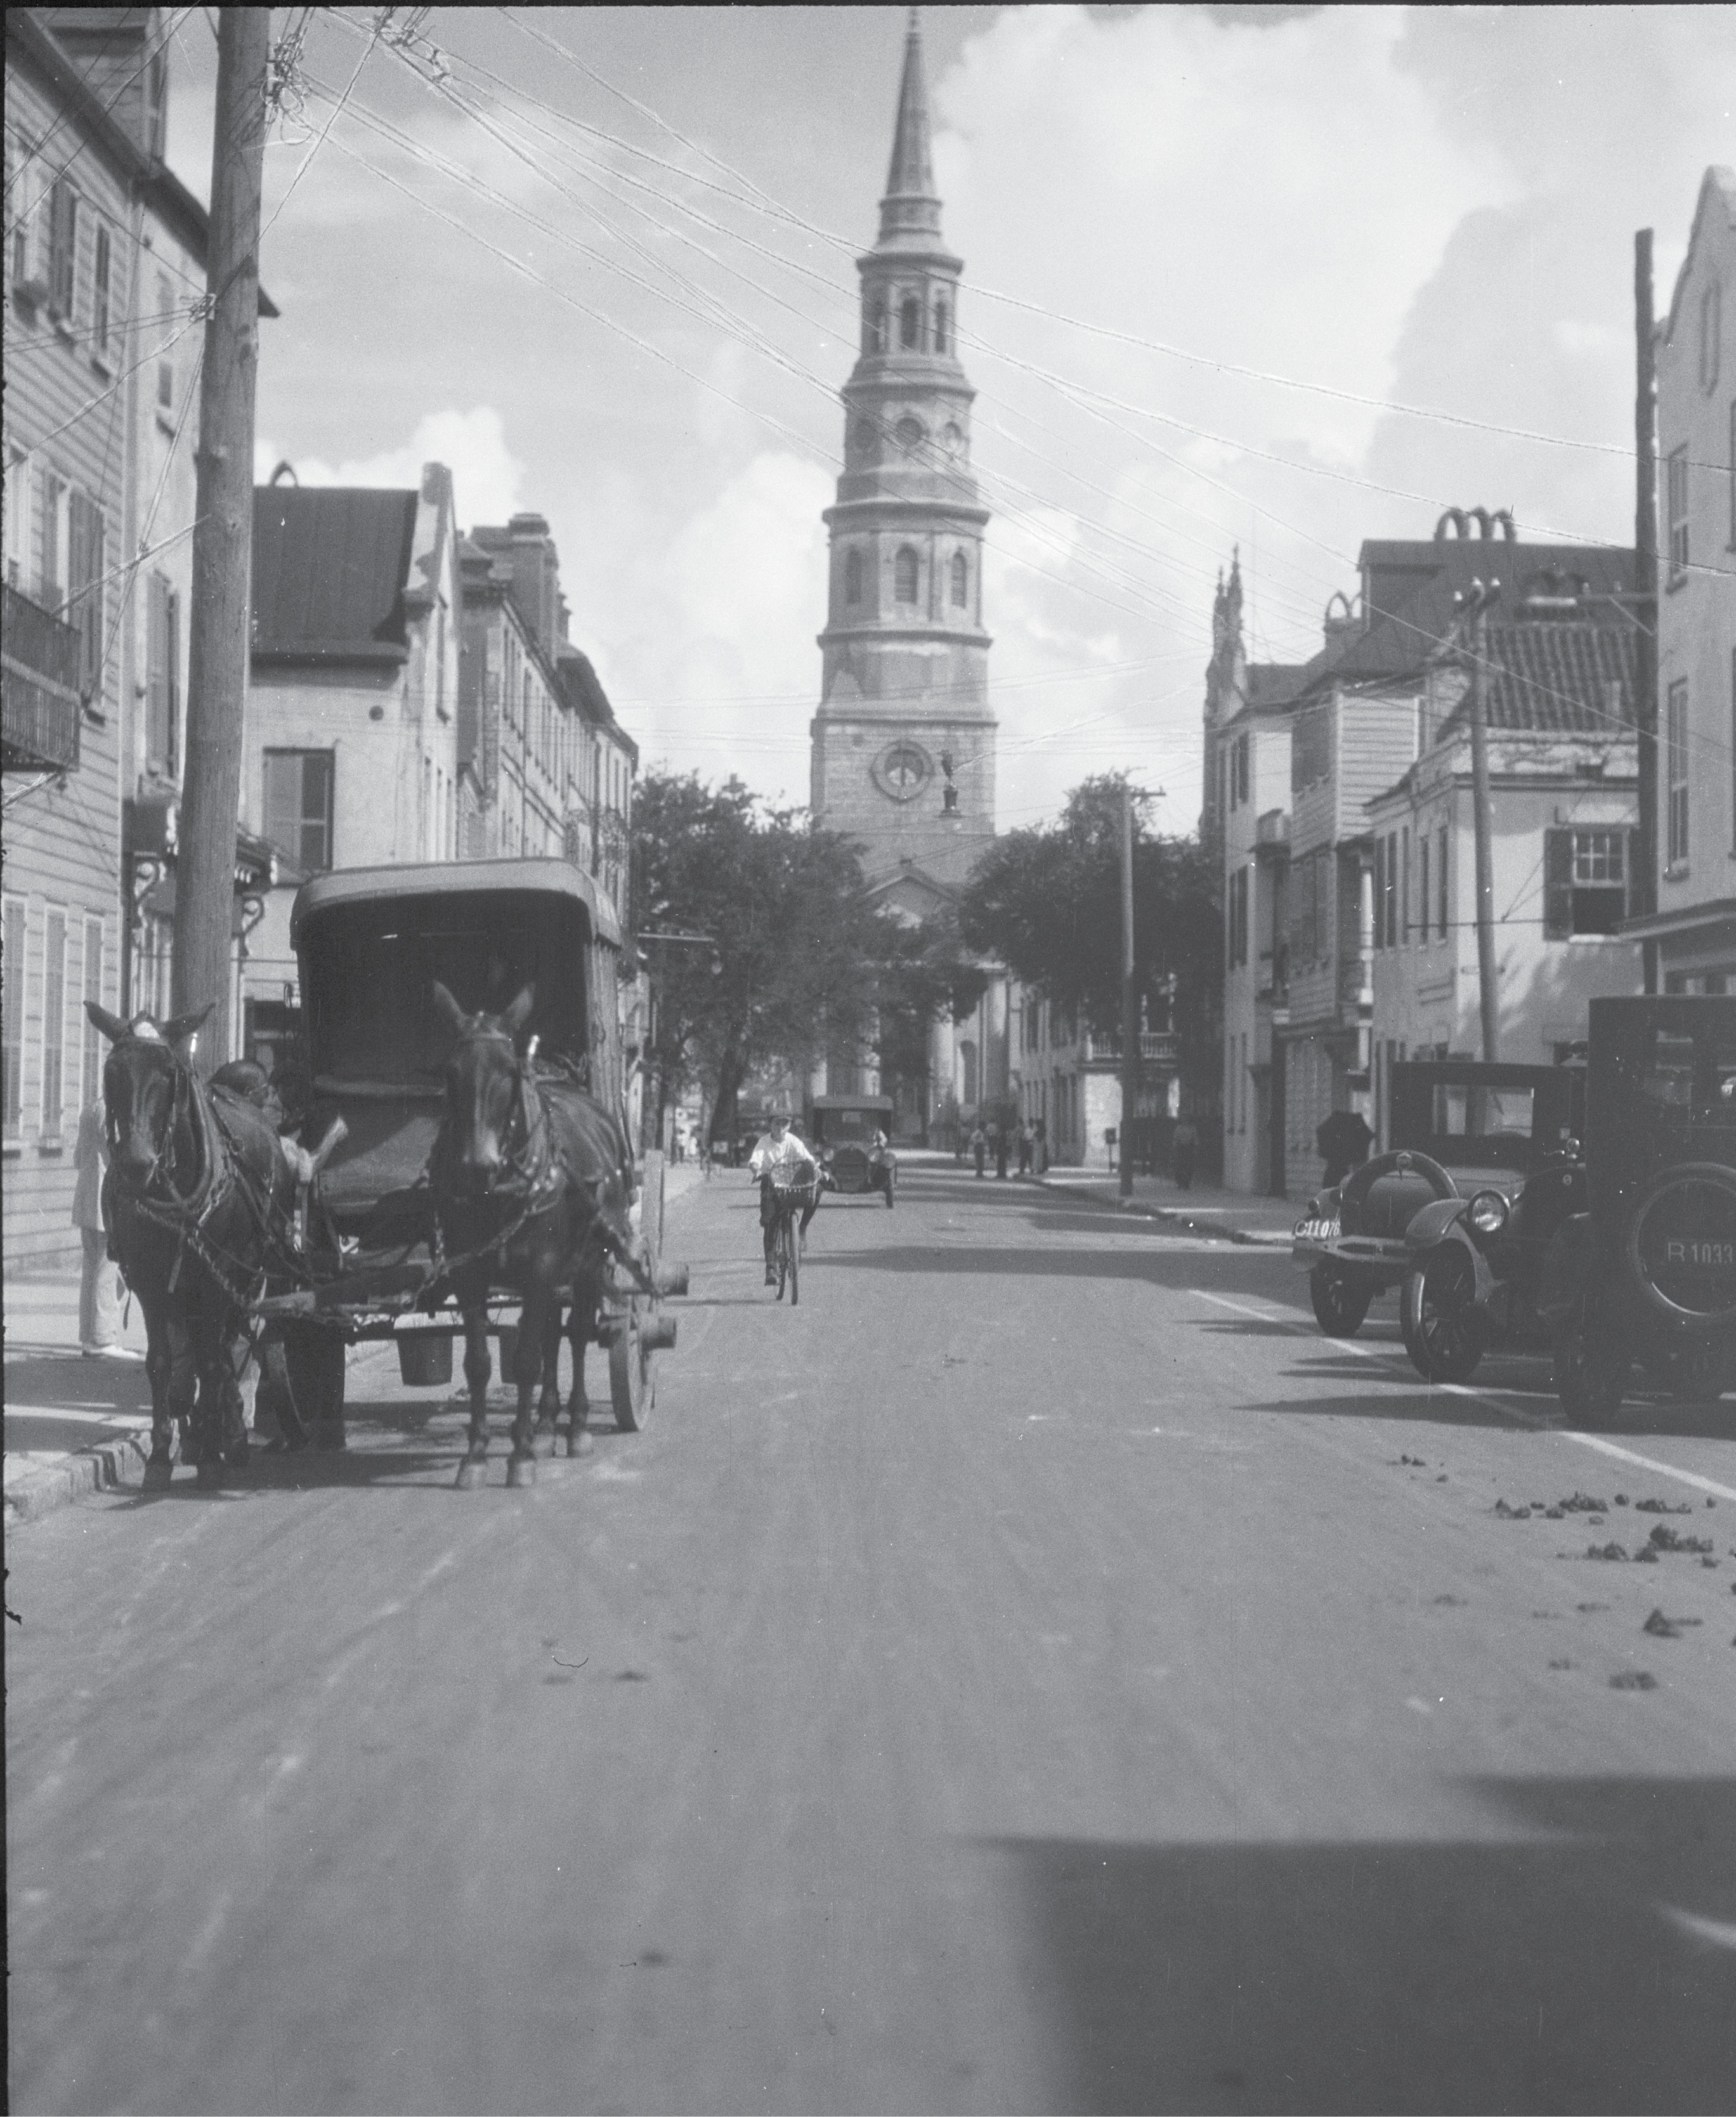 View looking north down Church Street to St. Philip's Church, circa 1920s, by German photographer Arnold Genthe